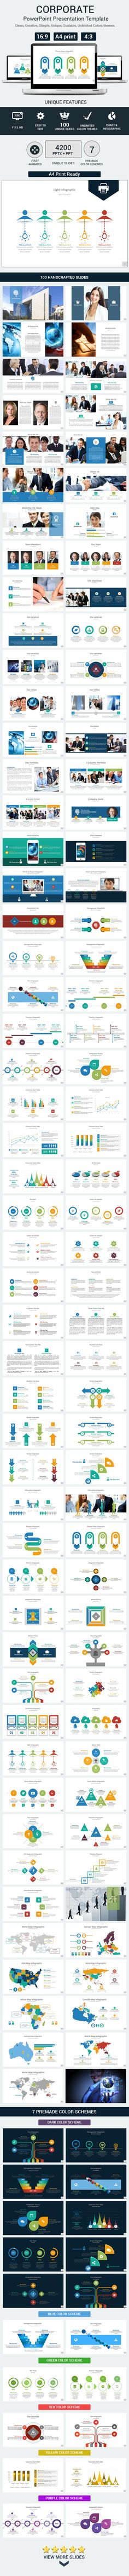 Corporate PowerPoint Presentation Template (PowerPoint Templates)